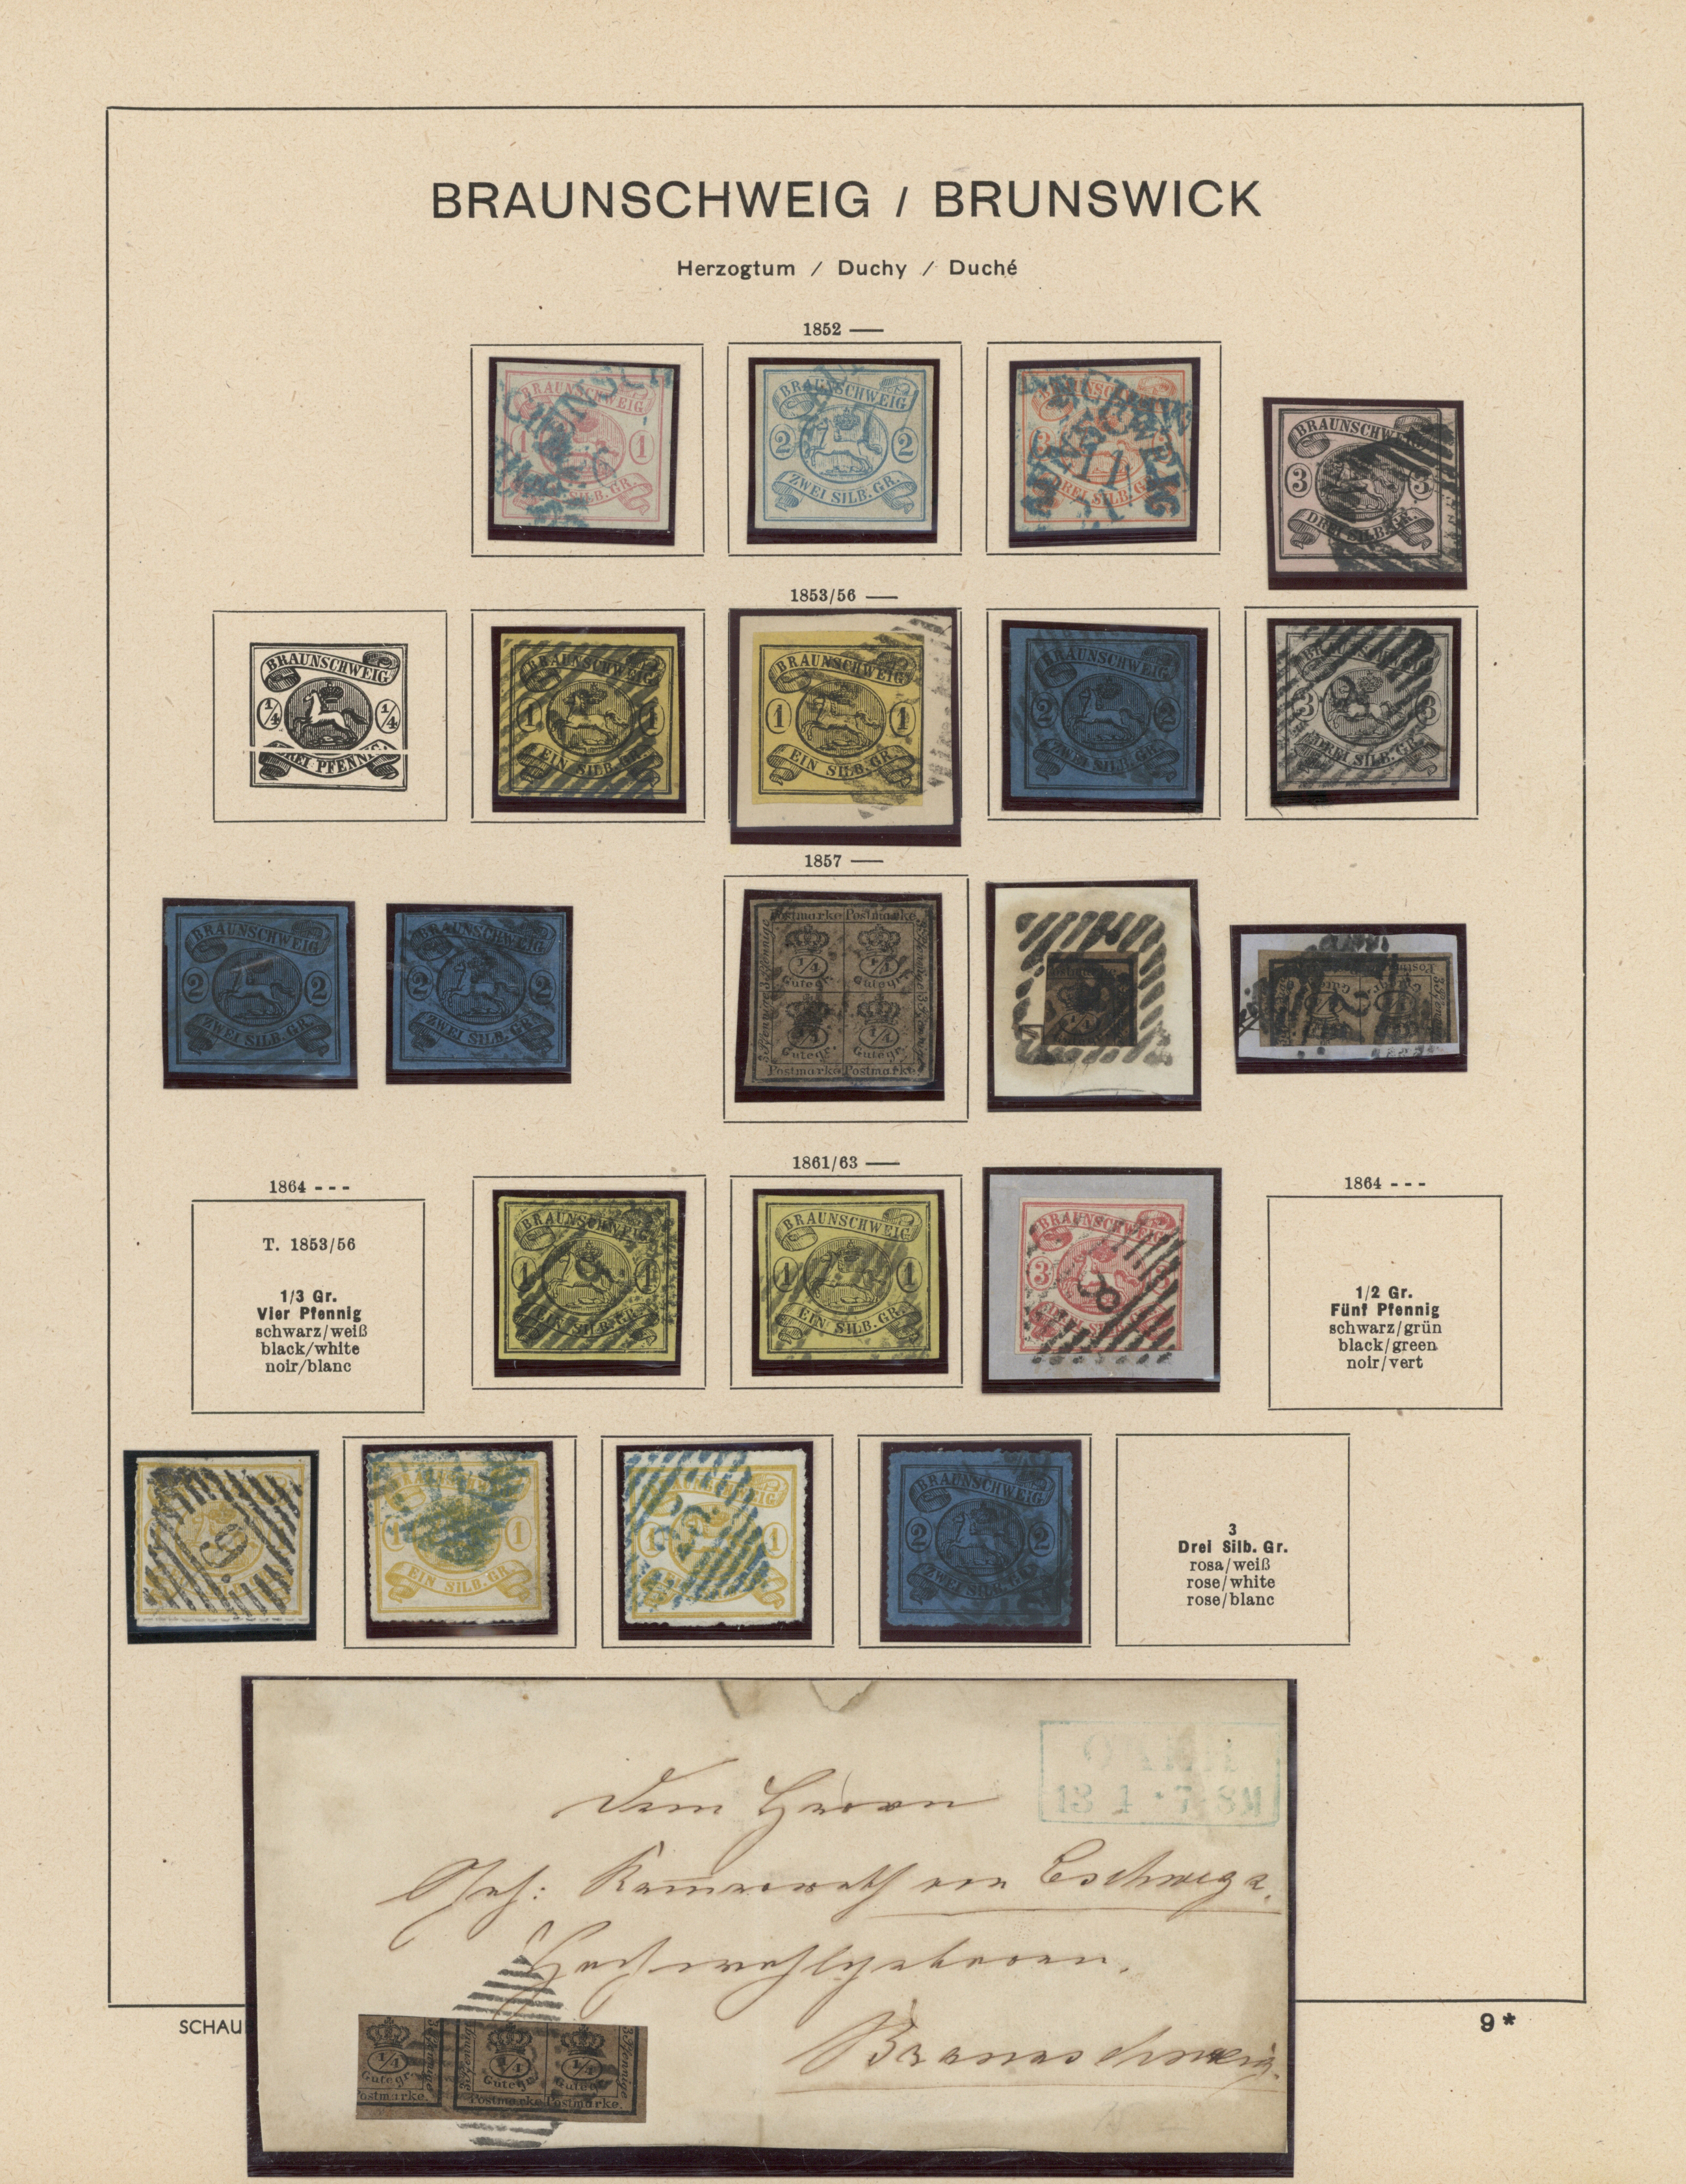 Lot 36343 - Braunschweig - Marken und Briefe  -  Auktionshaus Christoph Gärtner GmbH & Co. KG Collections Germany,  Collections Supplement, Surprise boxes #39 Day 7